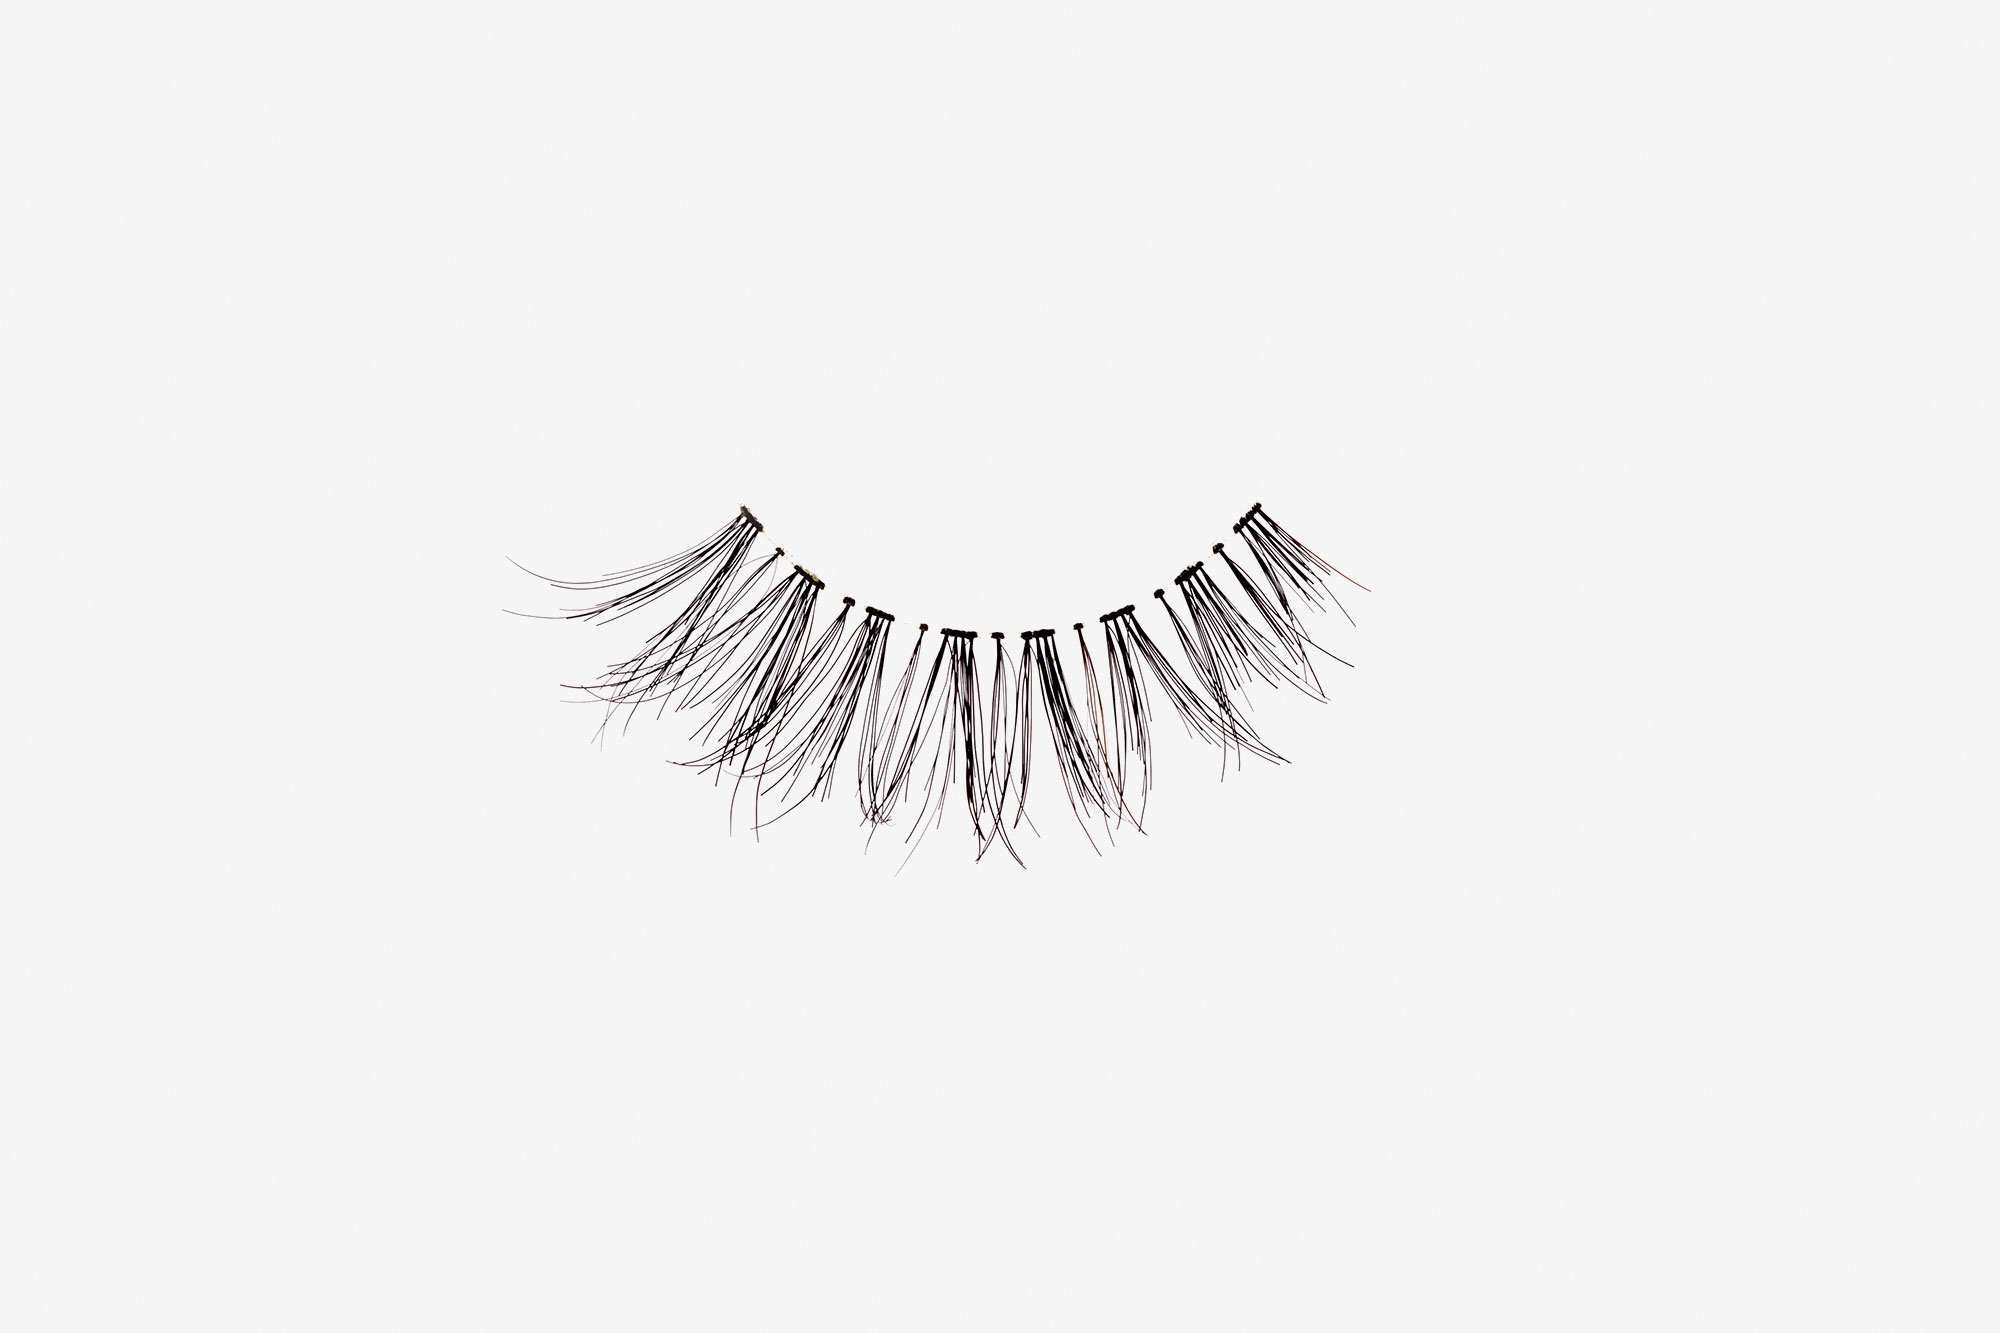 Carey False Eyelashes, single false lash on grey background